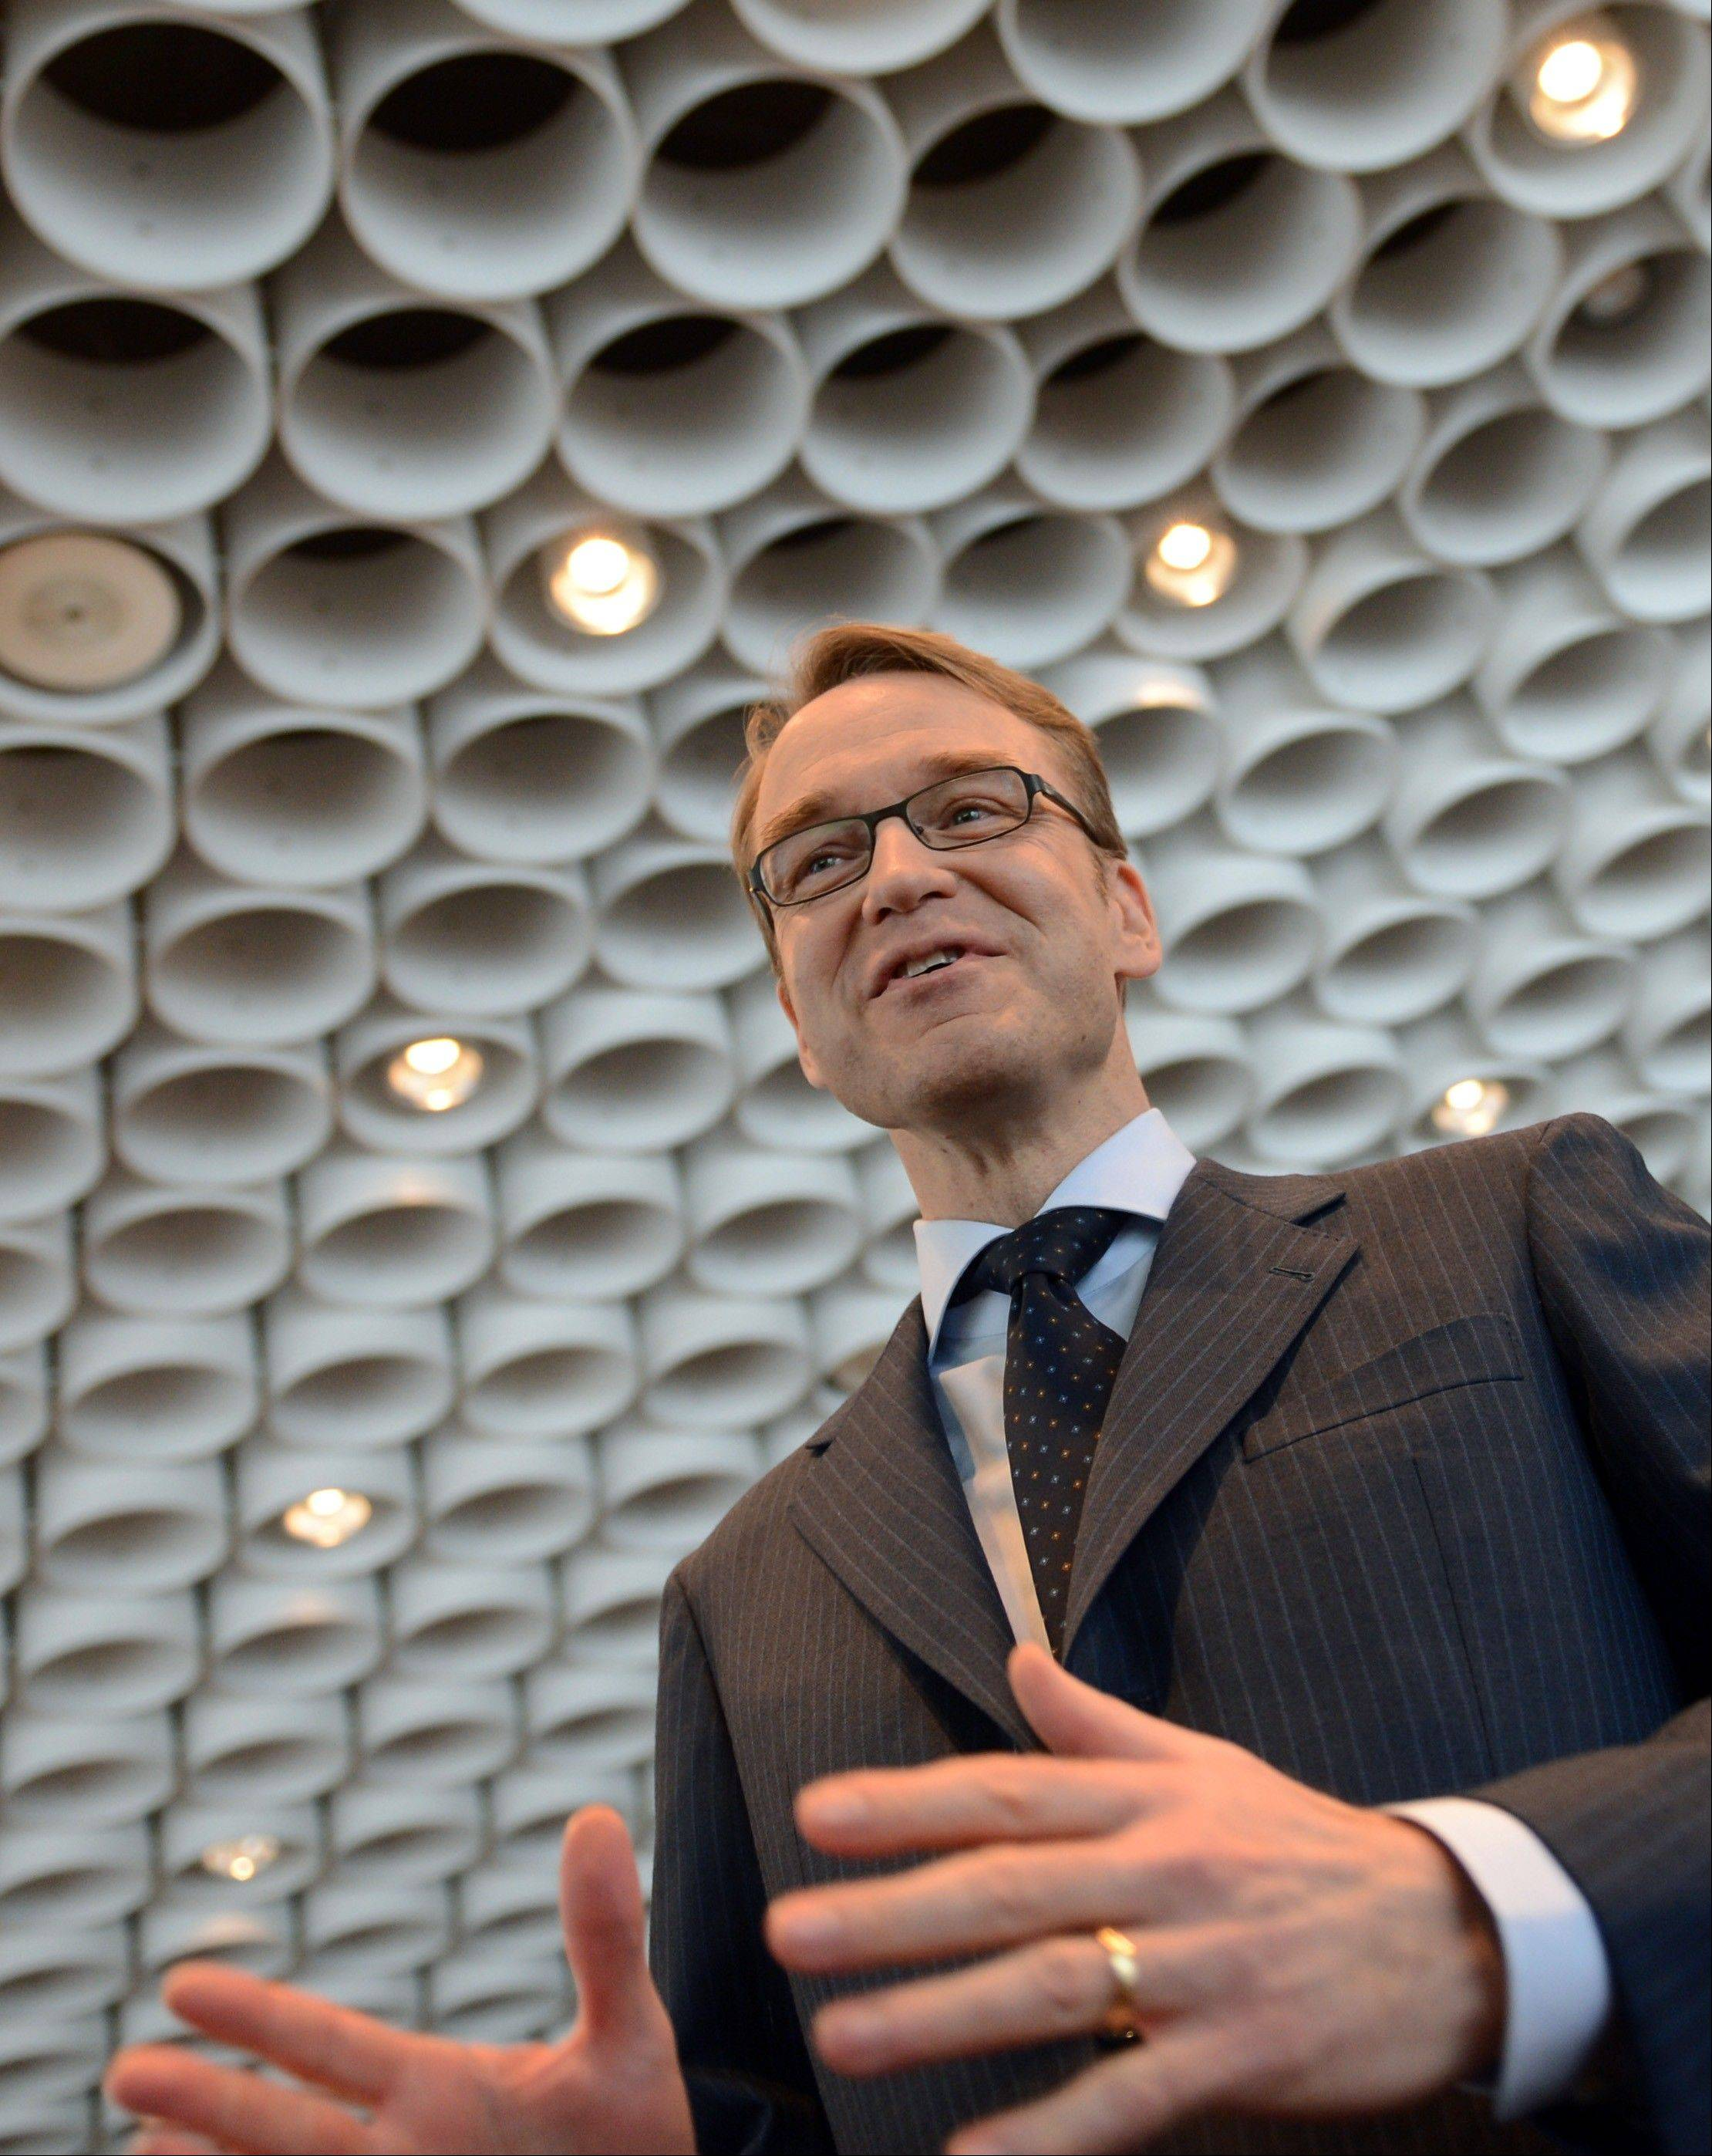 President of the German Central Bank Jens Weidmann arrives for the annual press conference at the headquarters of the German Central Bank in Frankfurt, central Germany, Tuesday,